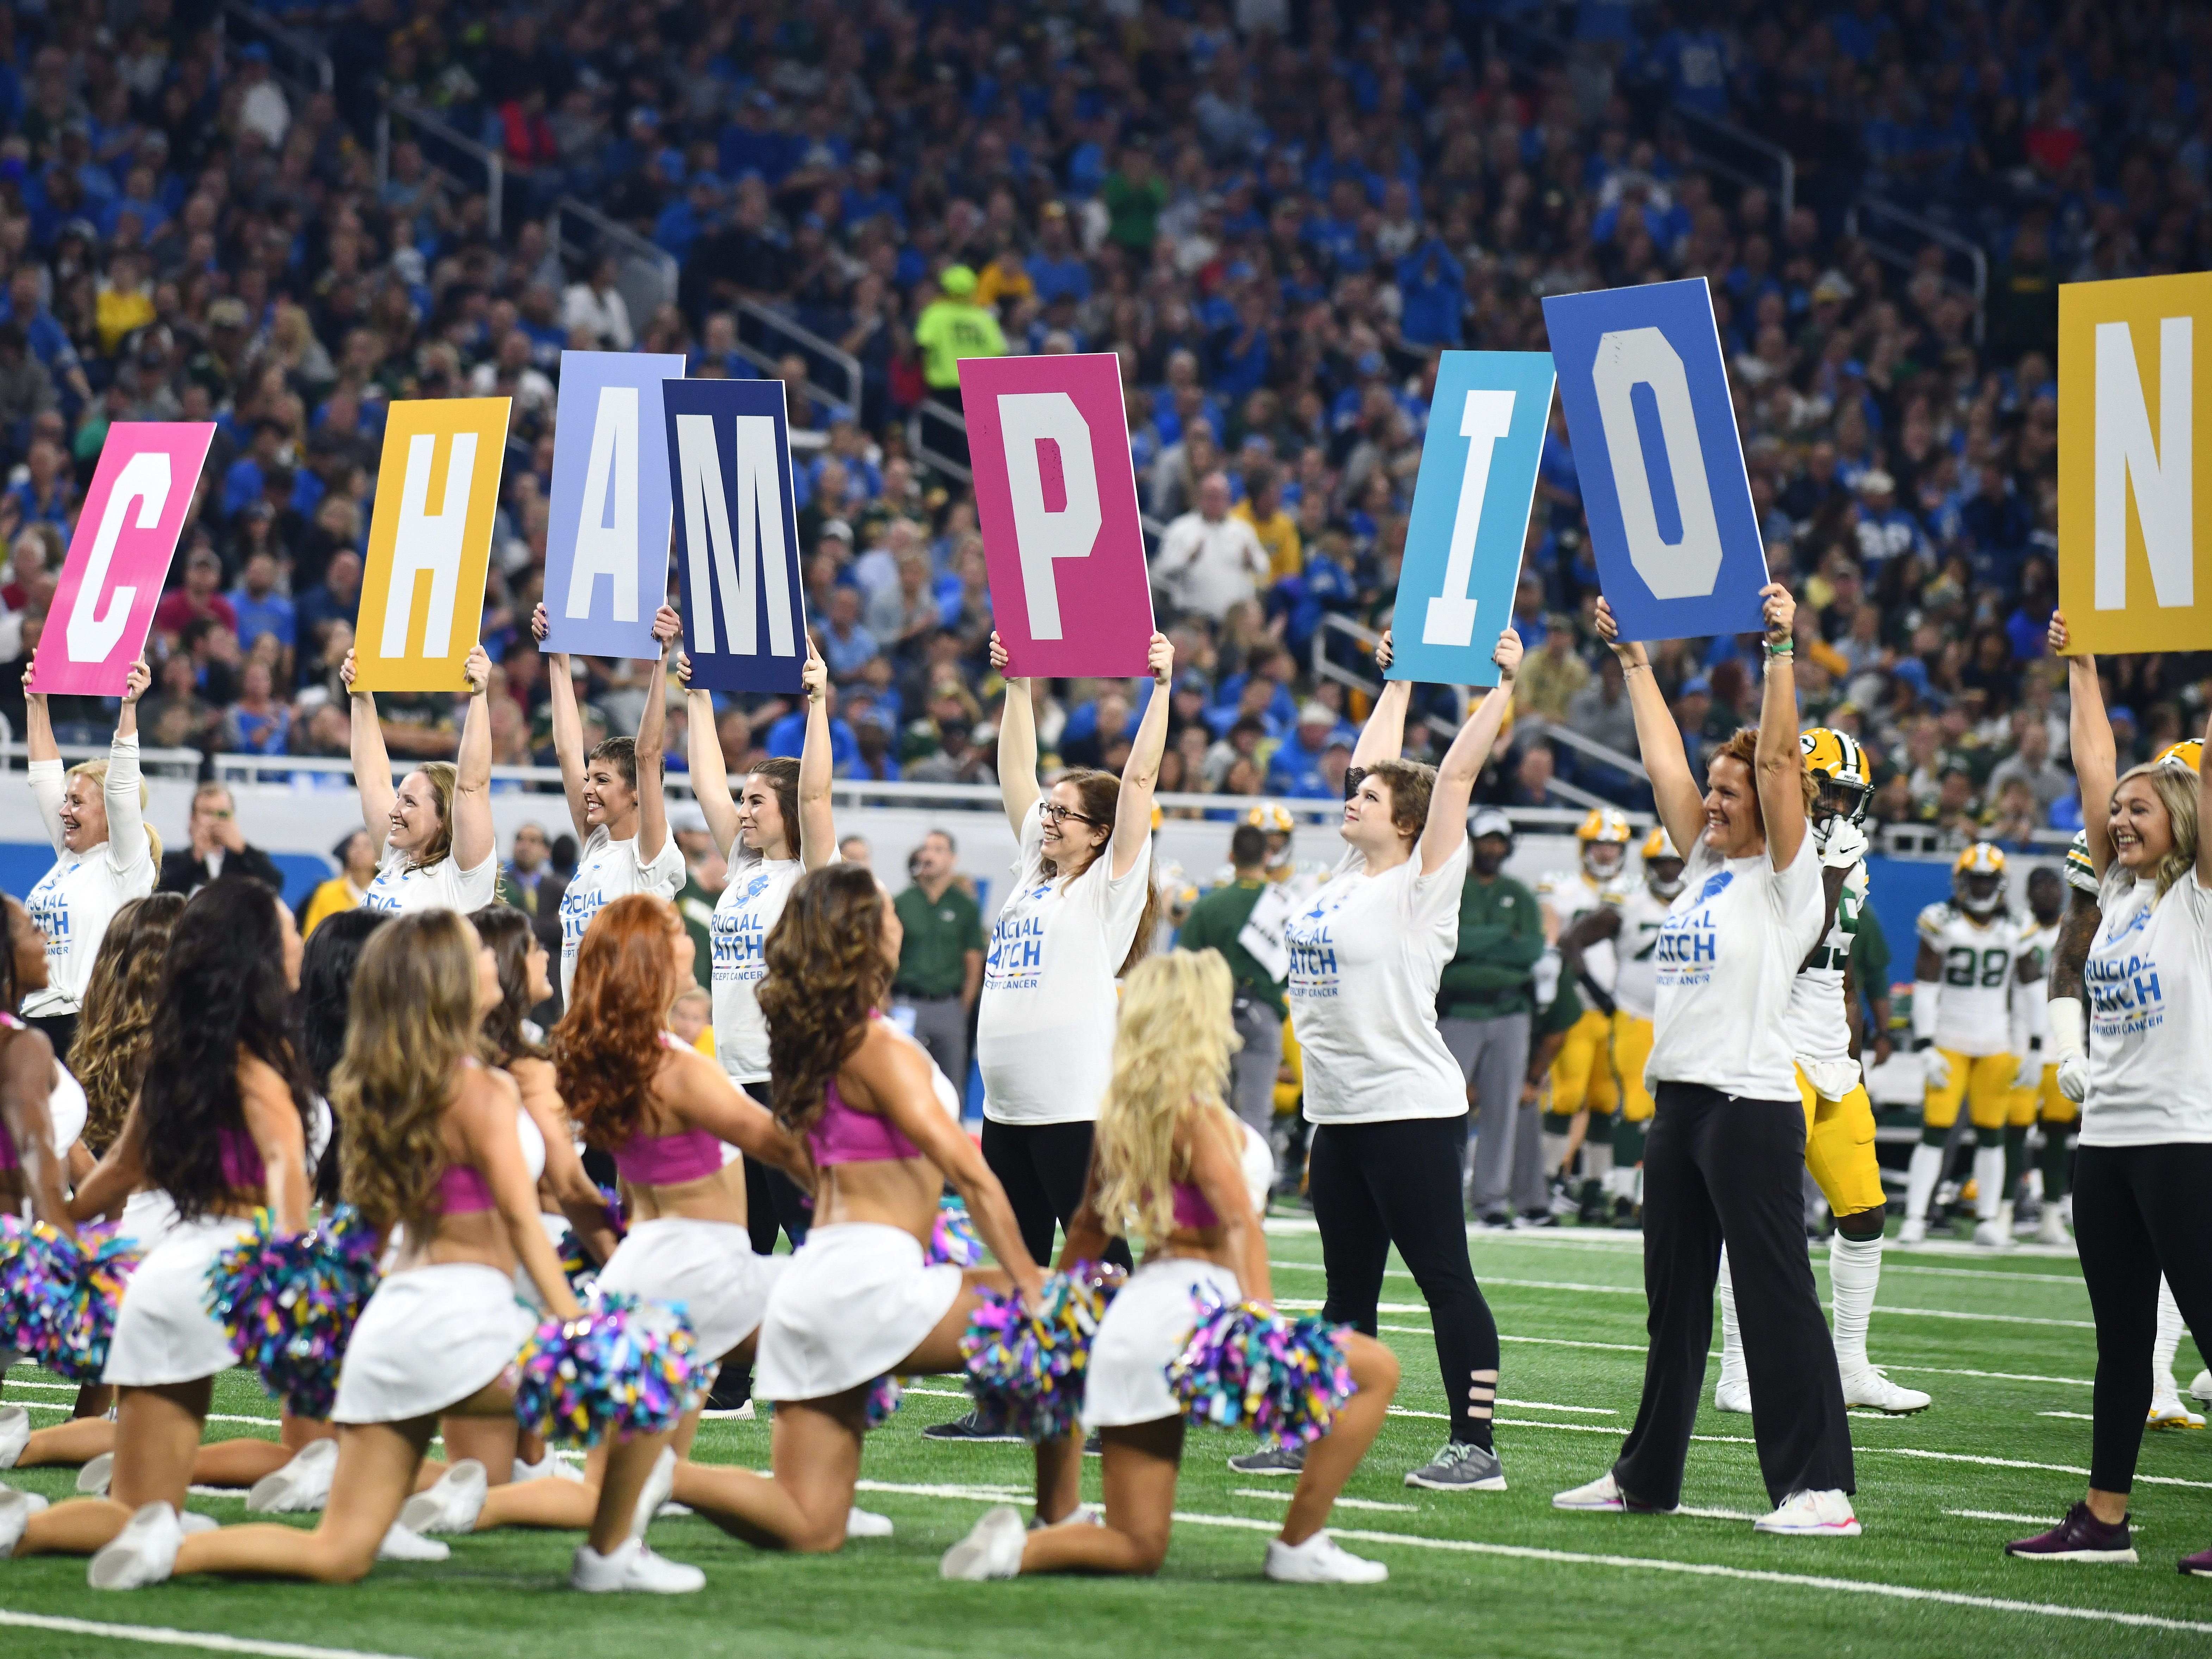 Cancer survivors are honored on the field with the Detroit Lions Cheerleaders during a break in the action in the first quarter.